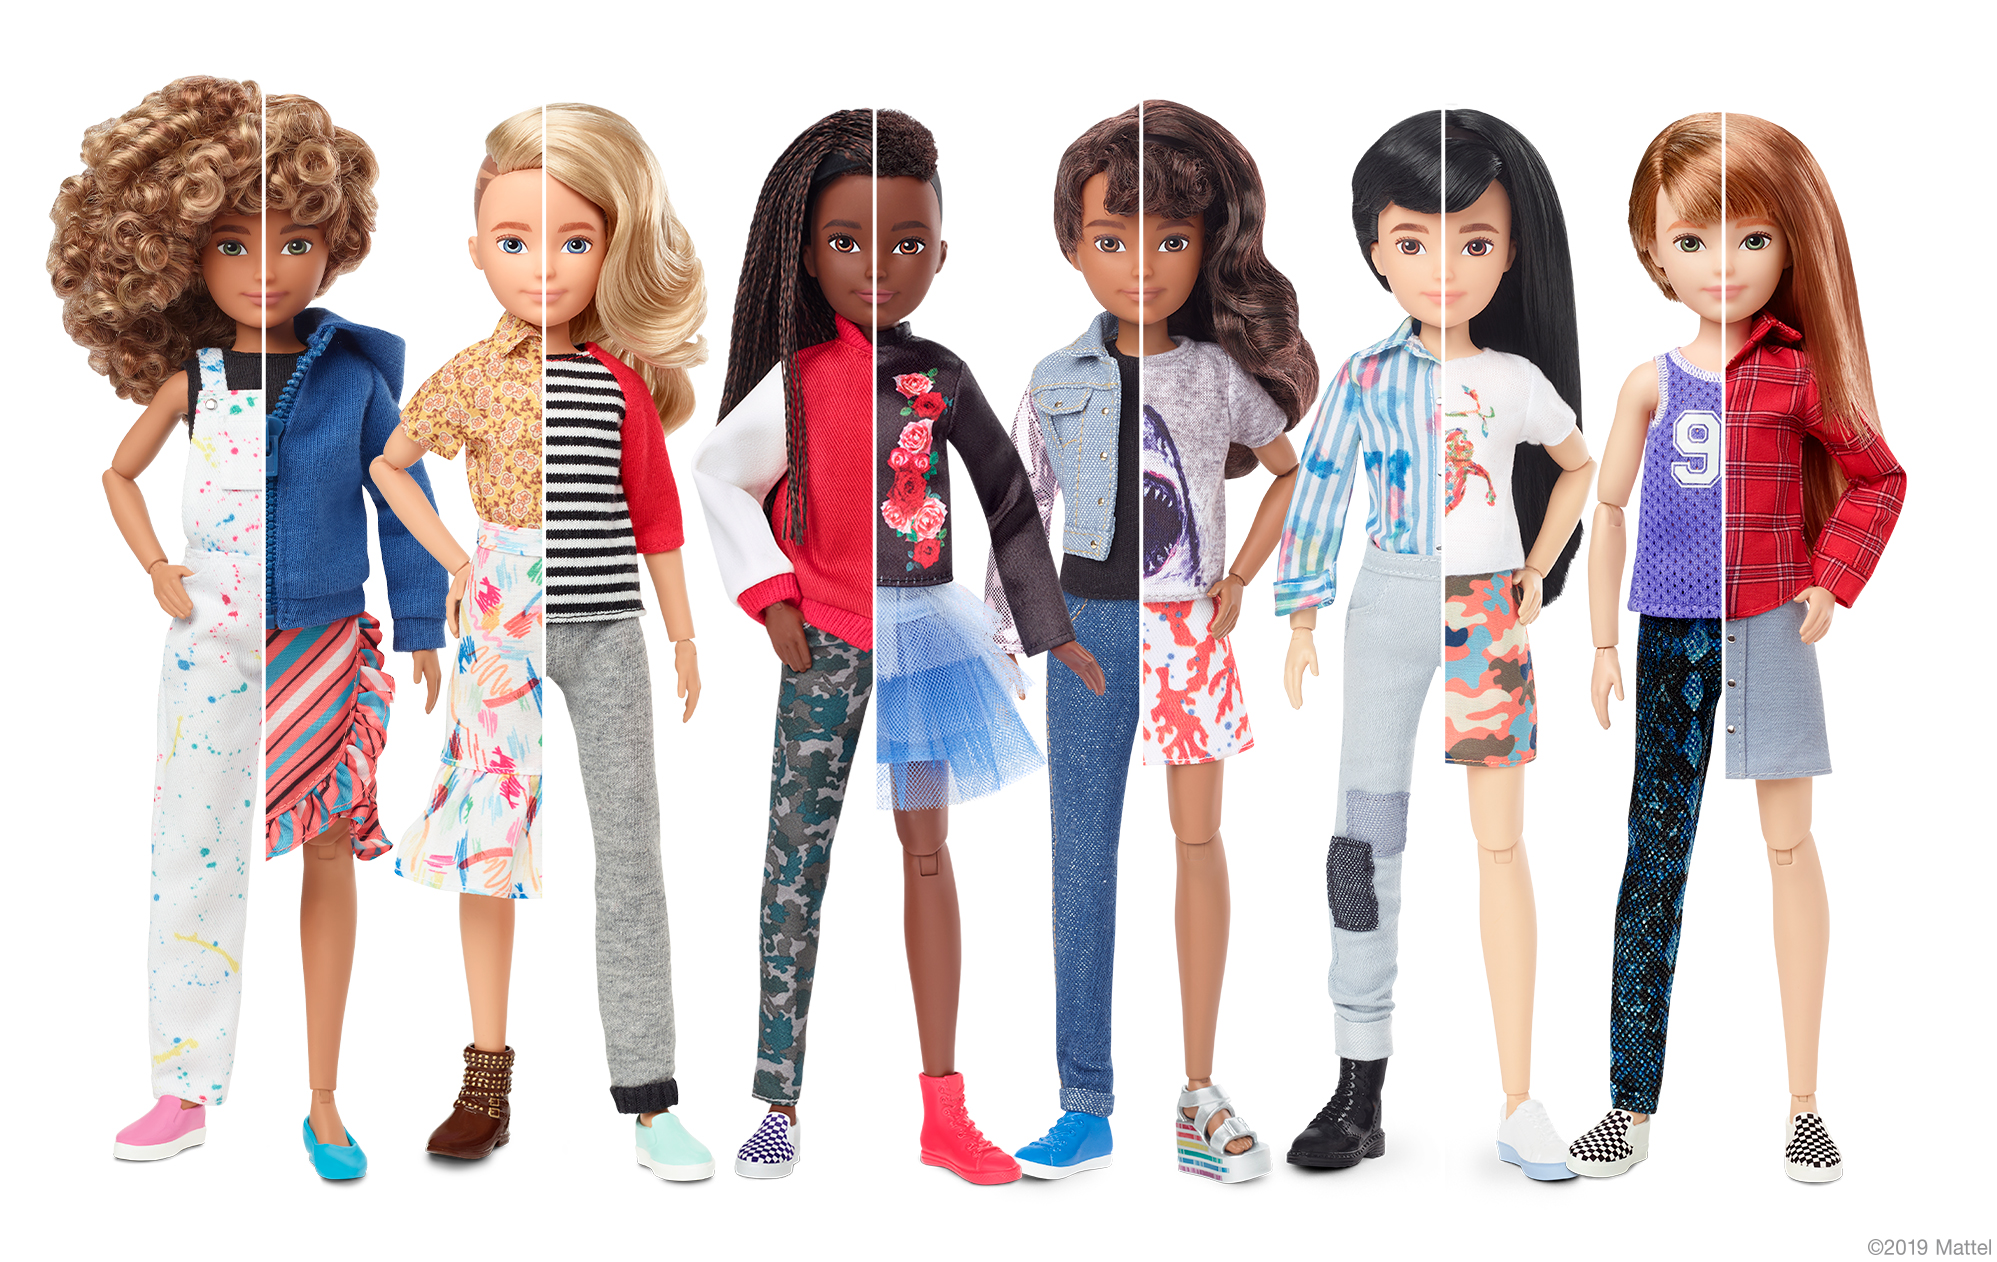 Mattel Just Launched Gender-Neutral Doll Line Allowing 'All Kids to Express Themselves Freely'